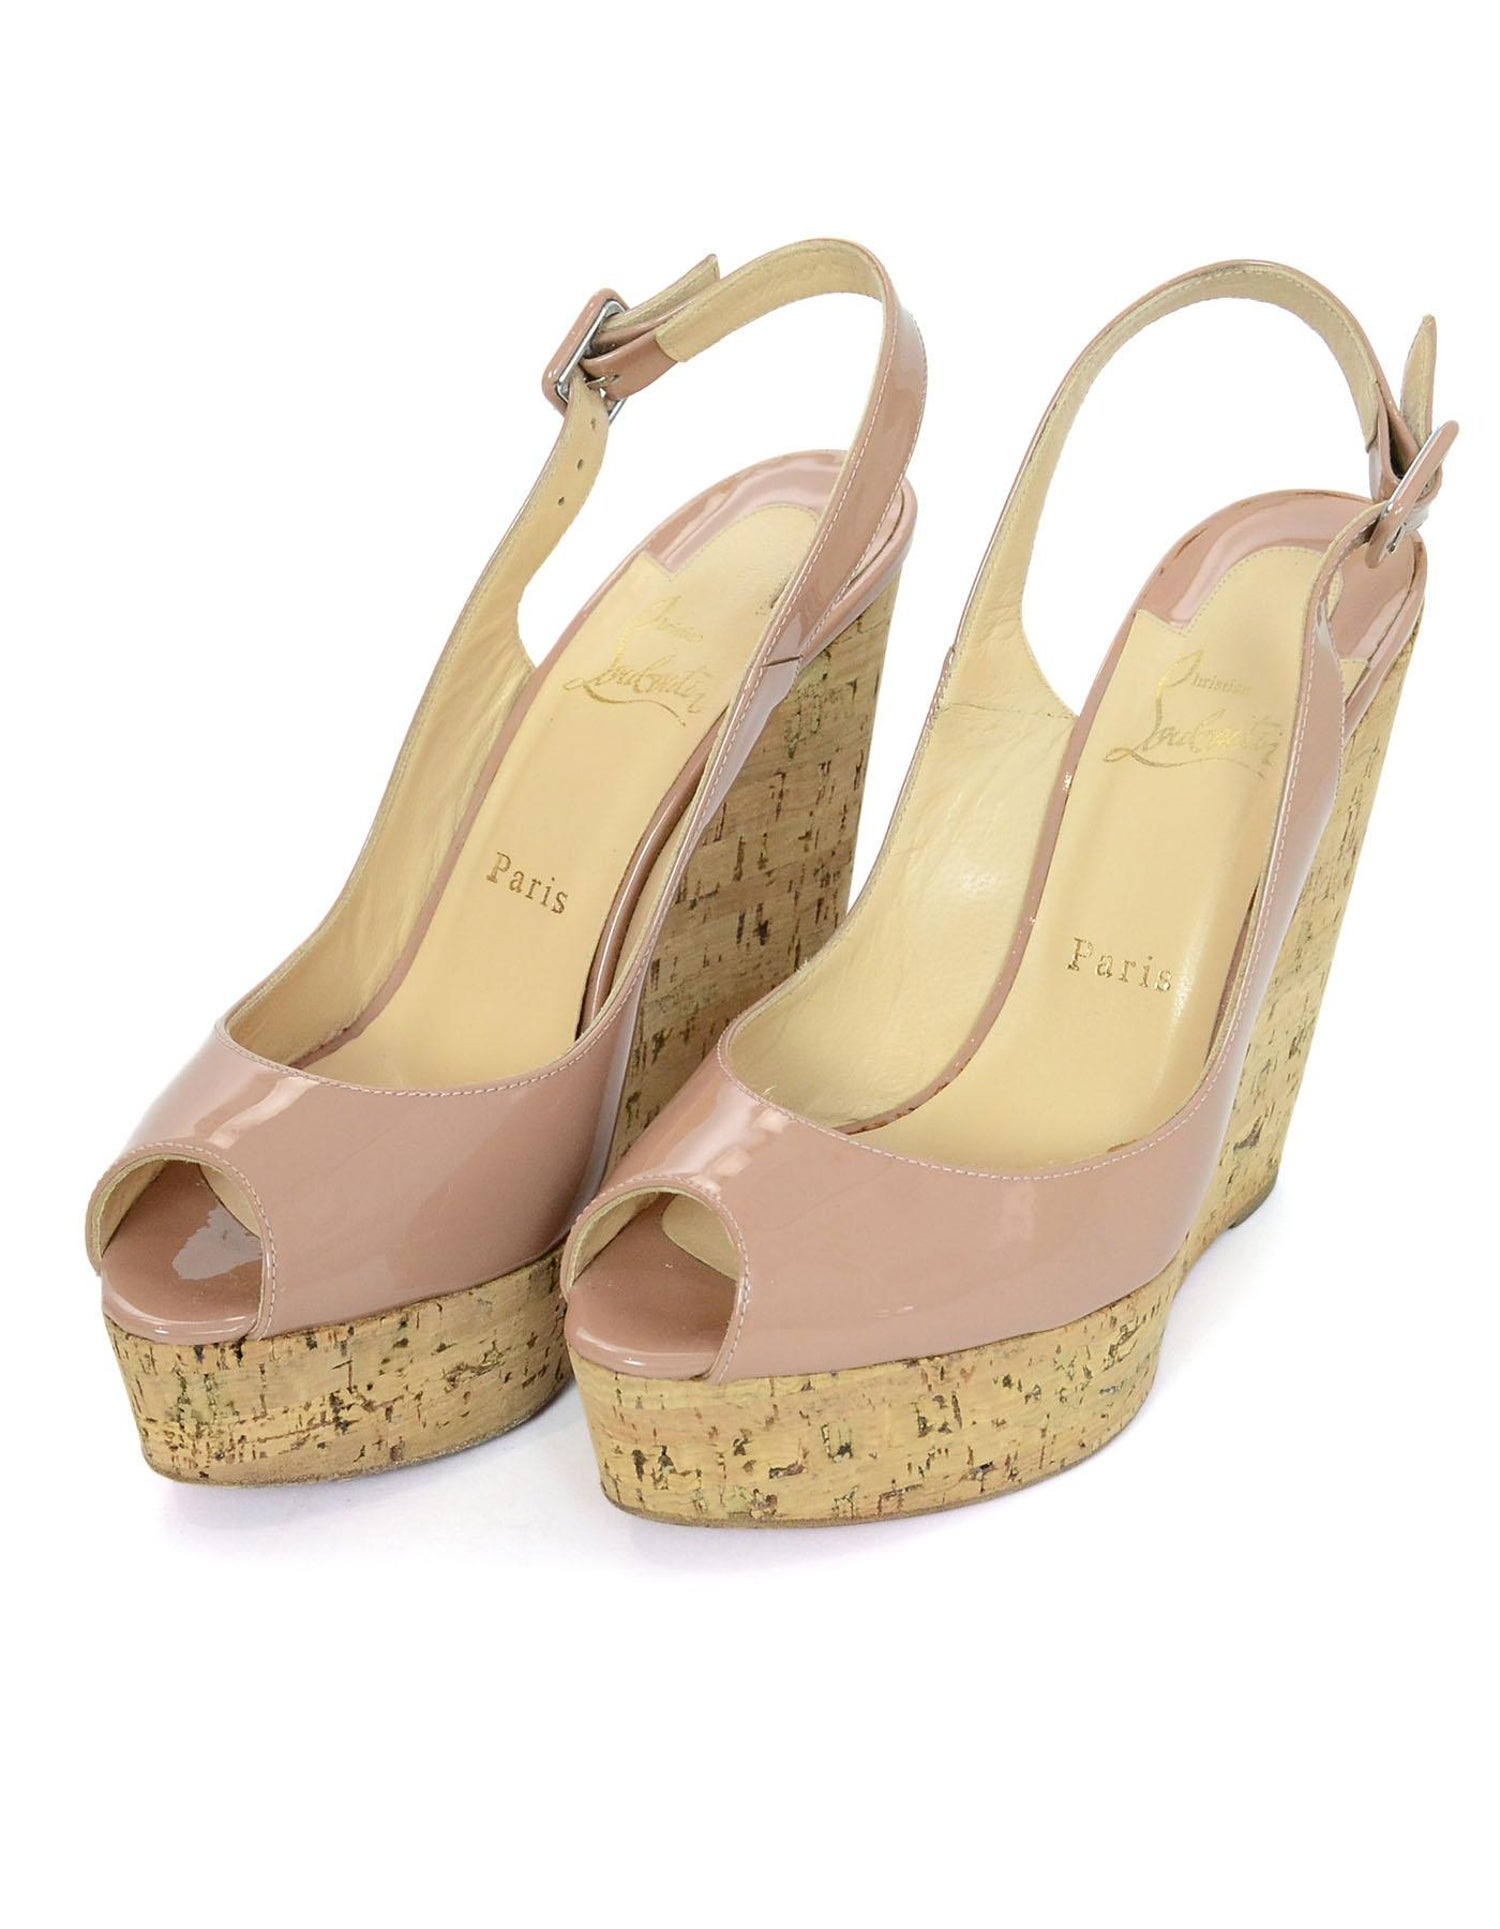 online store 7efab bac8d Christian Louboutin Nude Patent Une Plume Sling 140mm Wedges Sz 38